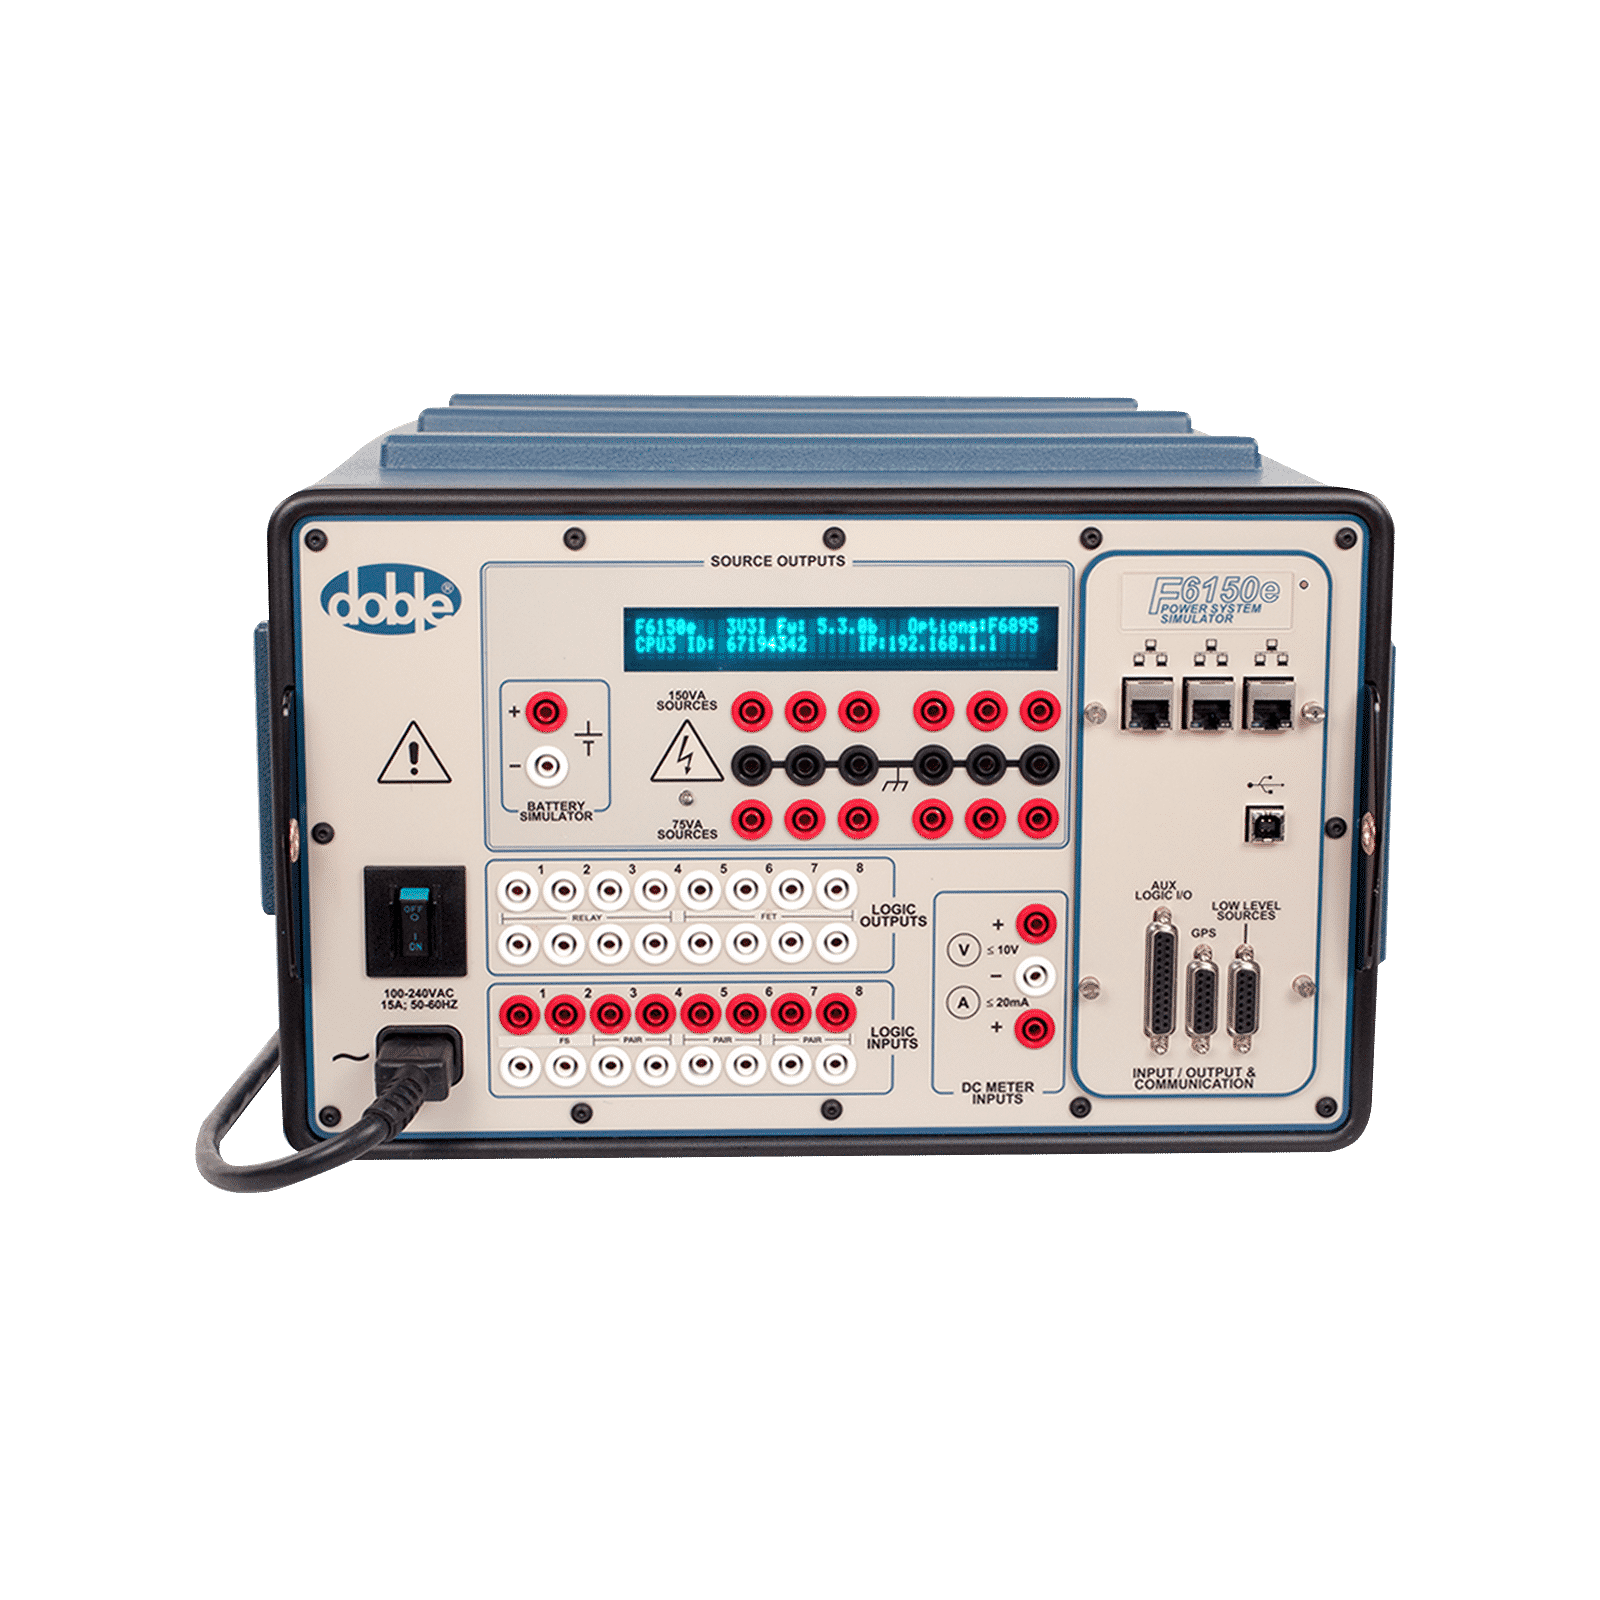 F6150e Protective Relay Tester Doble Engineering Company Current Based Product